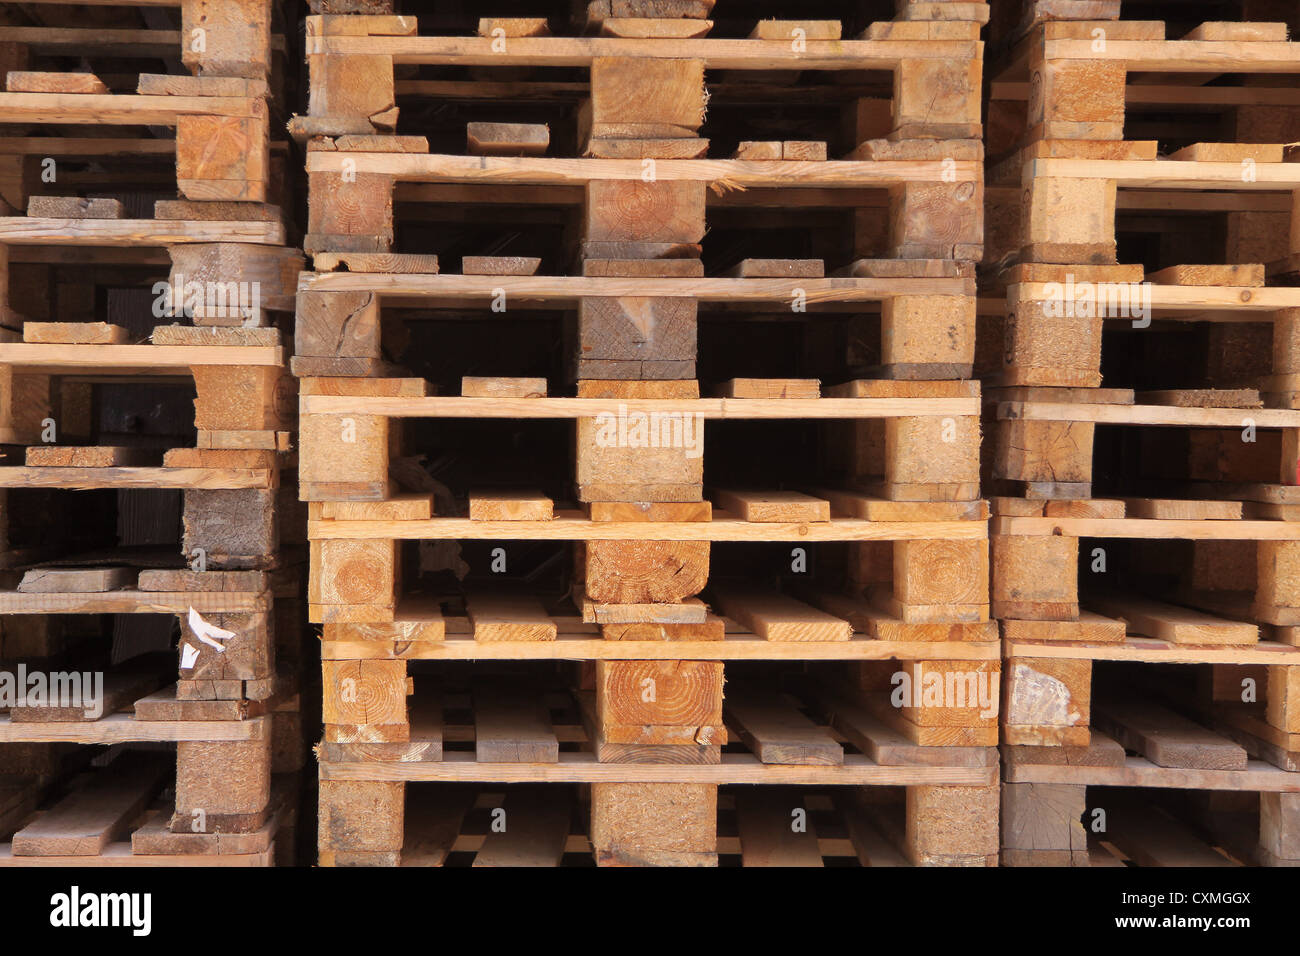 Stacked Euro pallets in longitudinal view - Stock Image